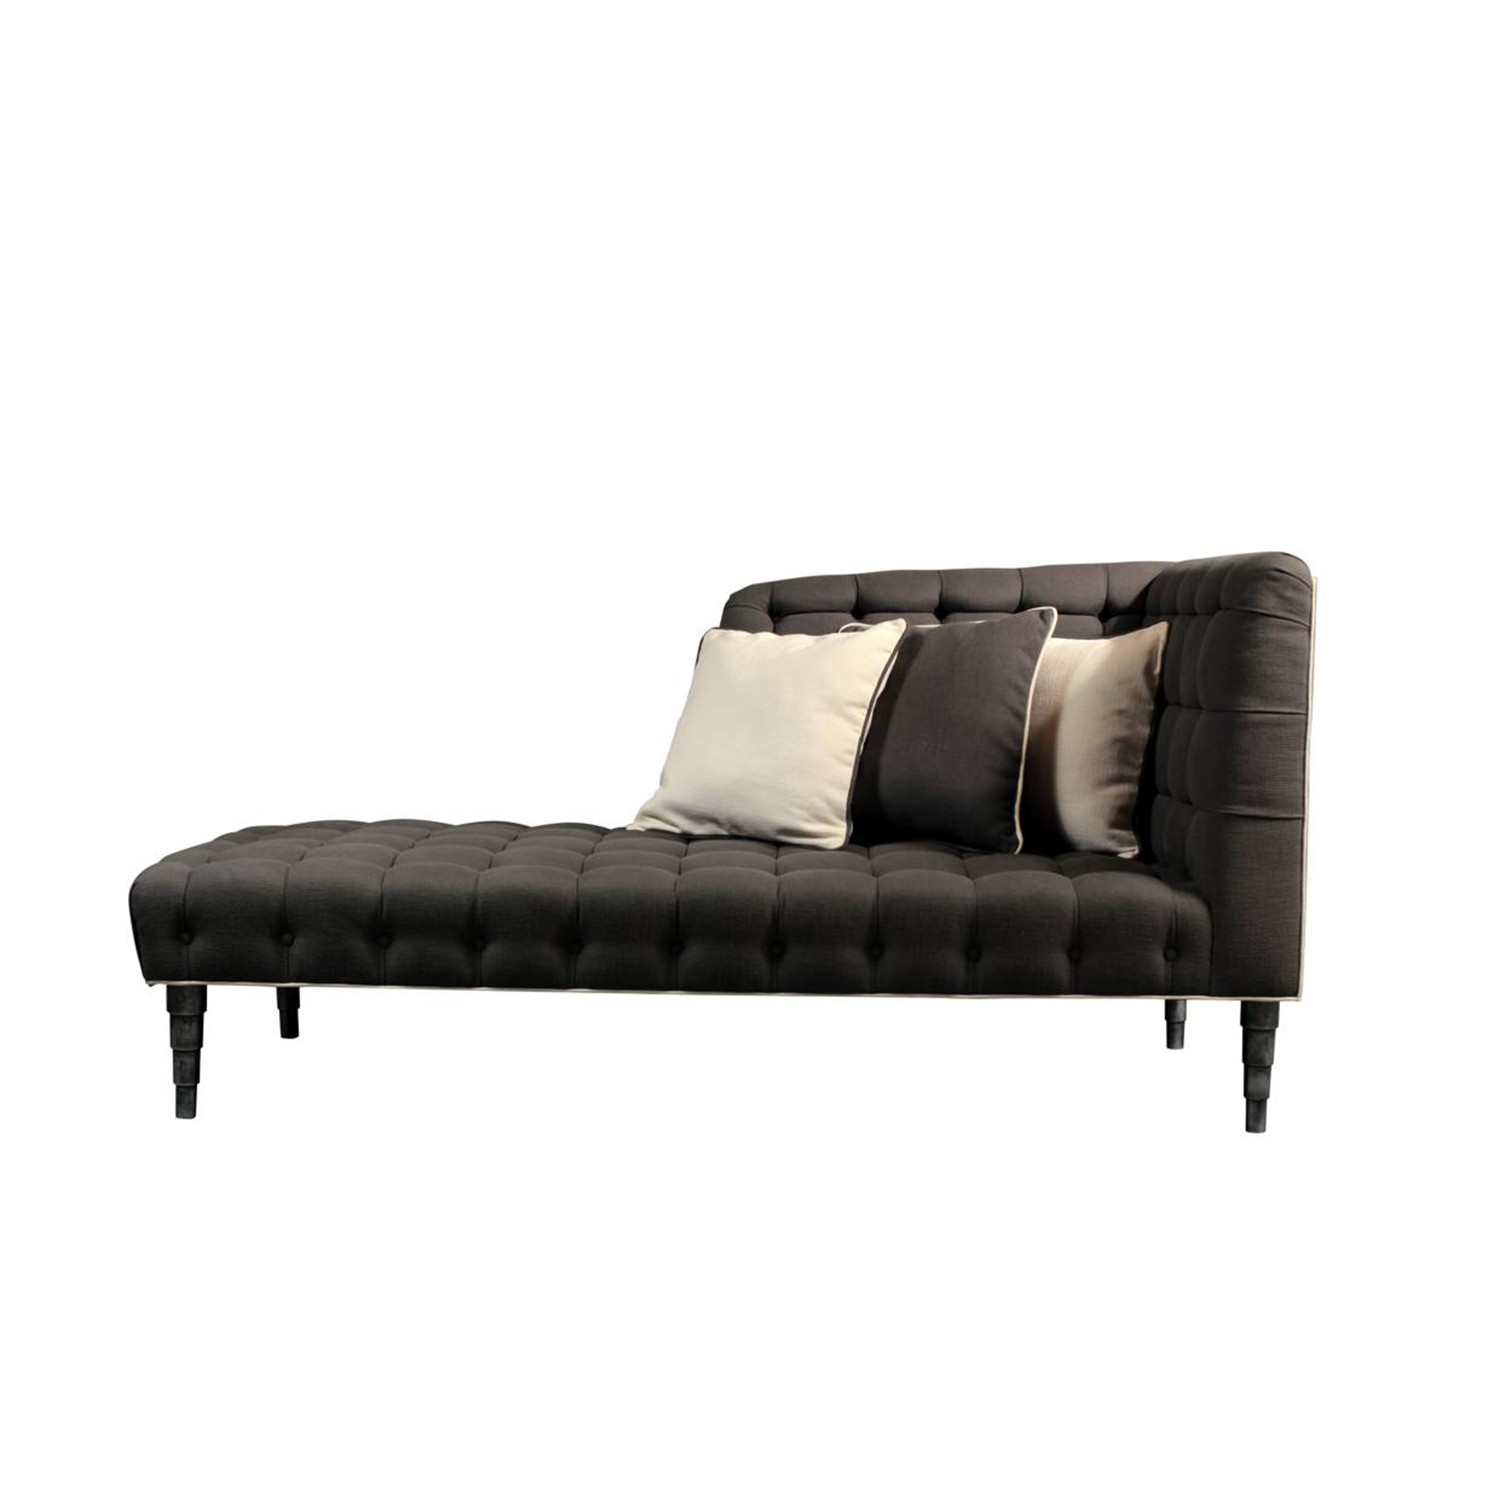 Anderson Charcoal and Cream Tufted Linen Chaise